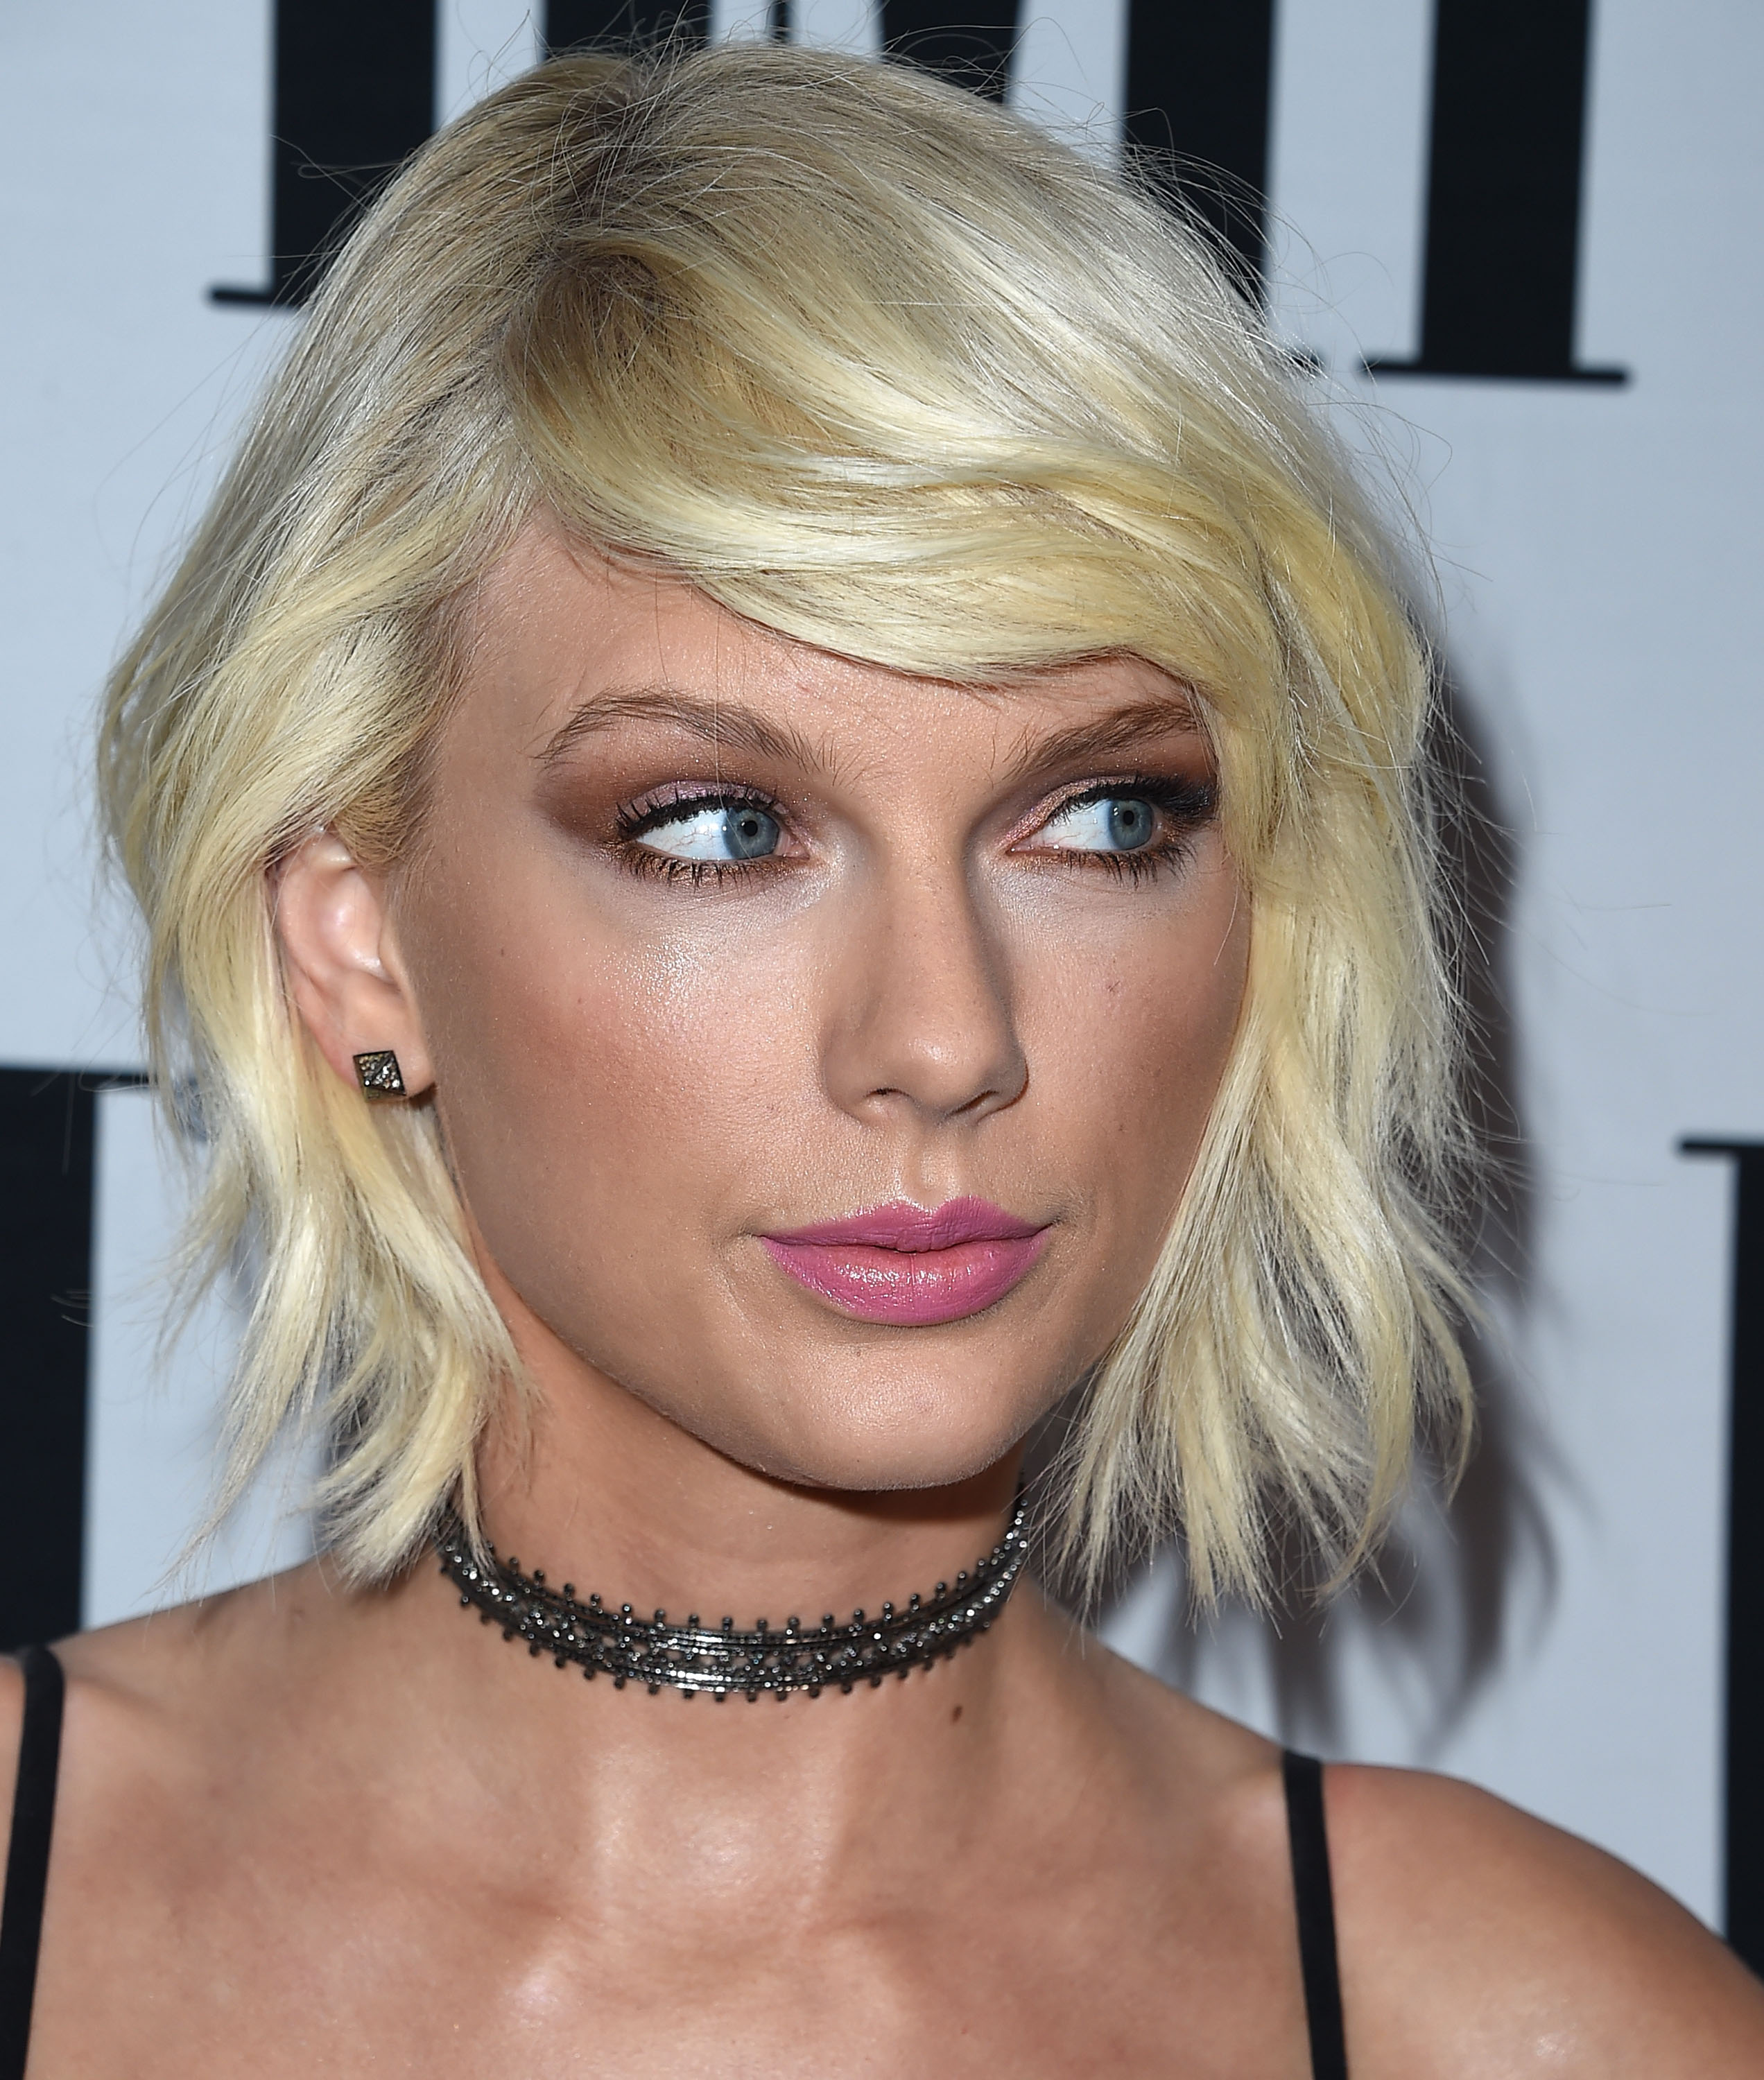 Taylor Swift Just Did The Weirdest Crab Walk While Sneaking Out Of